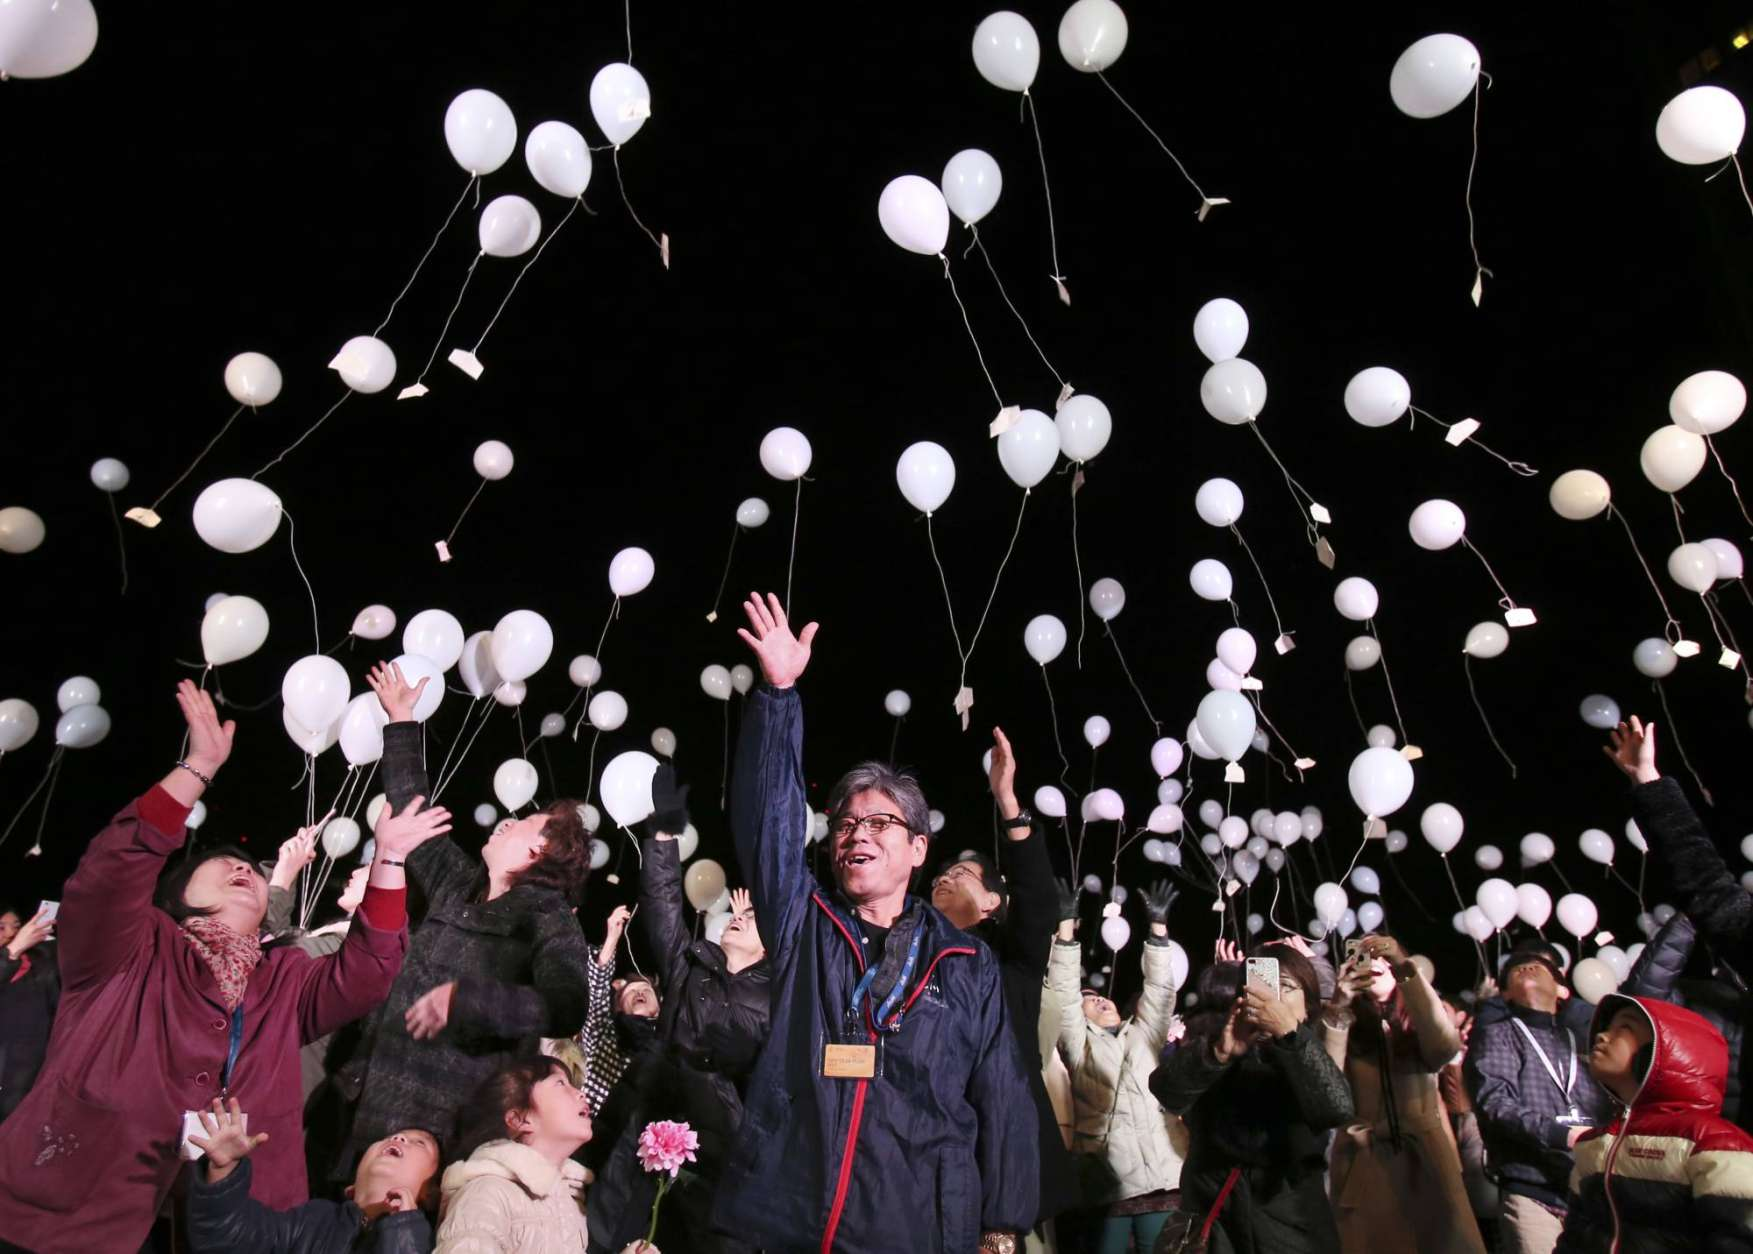 People release balloons into the air to celebrate New Year, during a New Year celebration event at a Tokyo Hotel, early Sunday, Jan. 1, 2017. (AP Photo/Koji Sasahara)